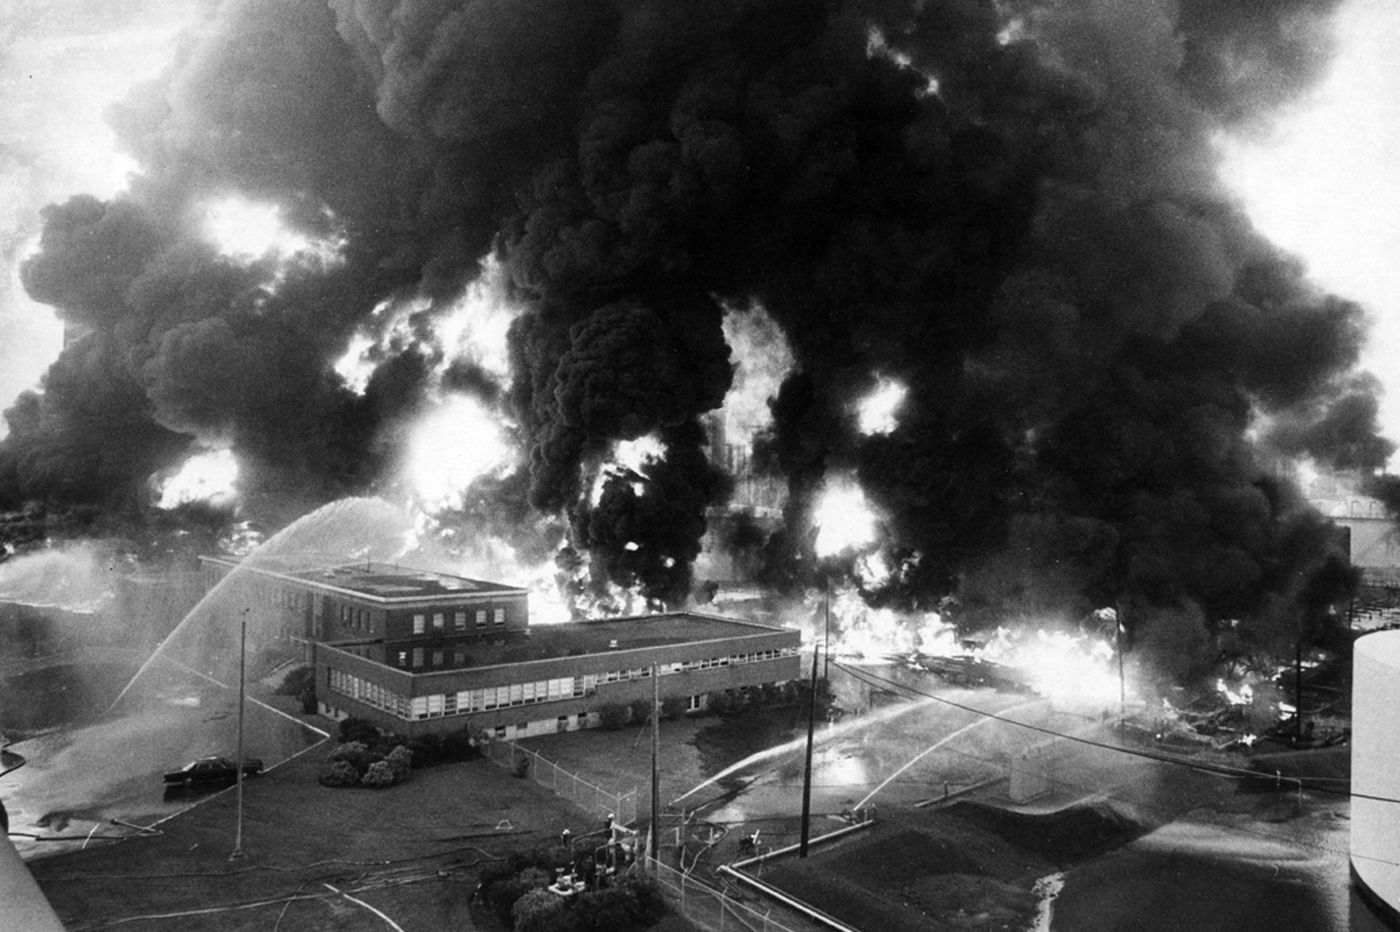 In Philly, a history of oil refinery fires going back decades